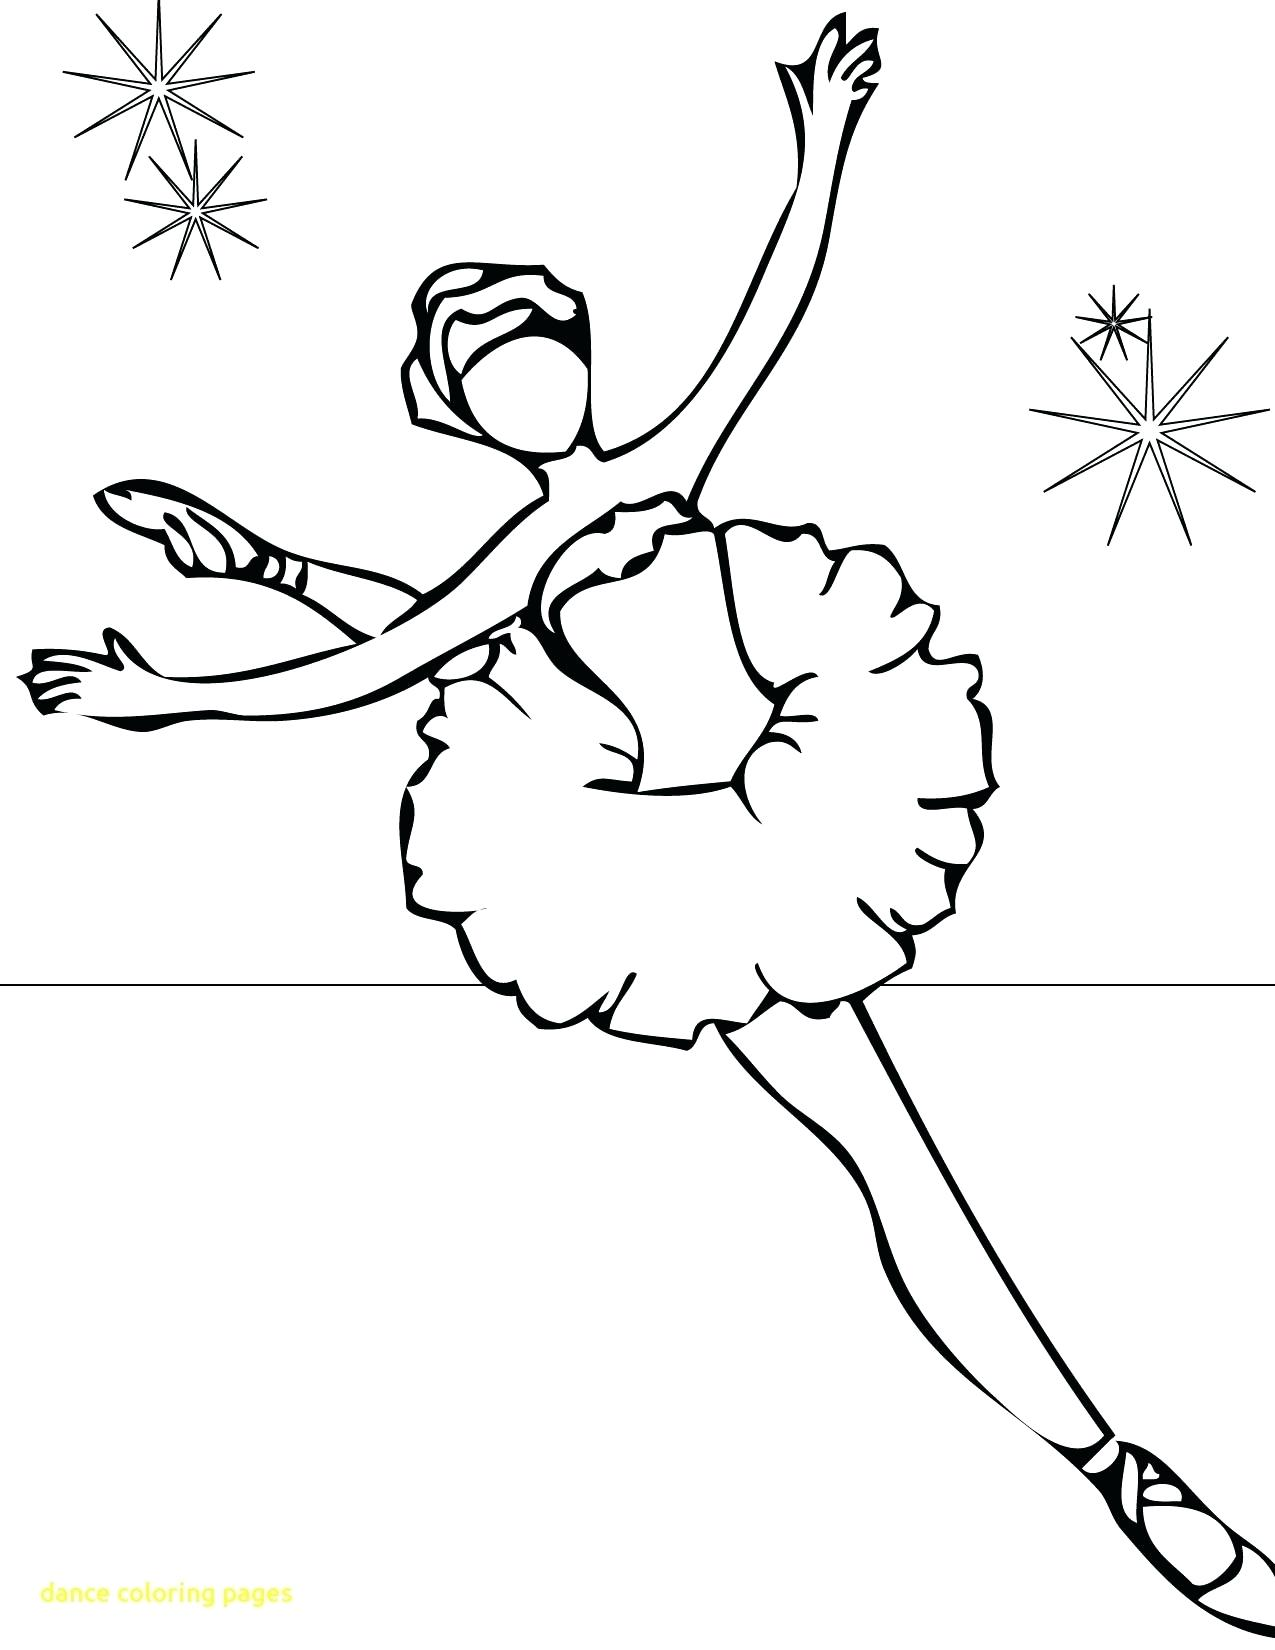 1275x1650 Coloring Irish Dance Coloring Pages With Ballerina Dress. Irish